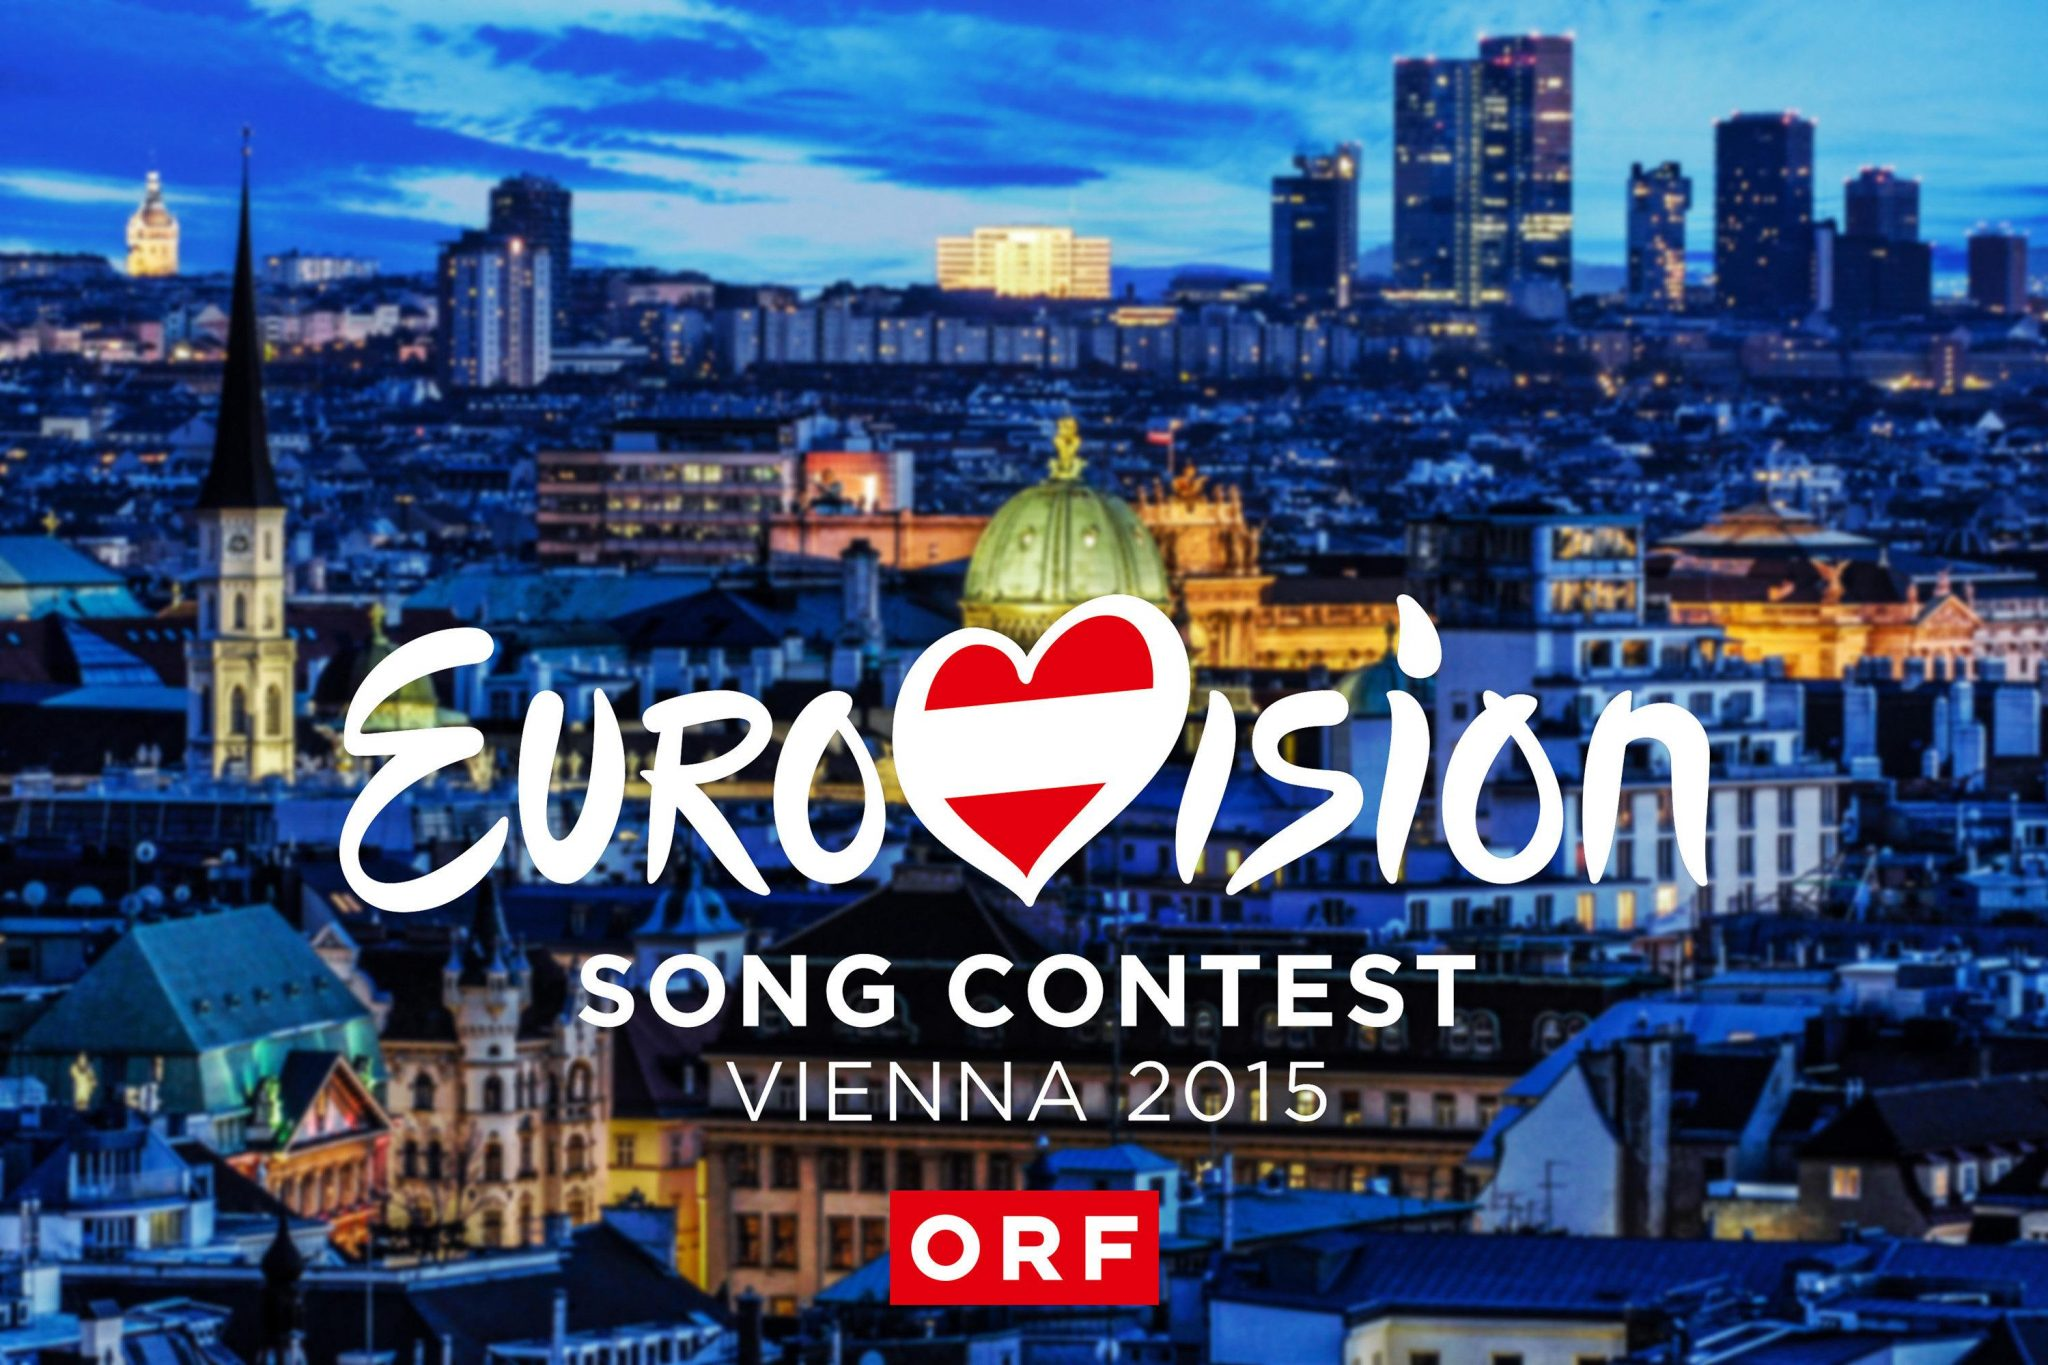 song-contest-2015-3to2